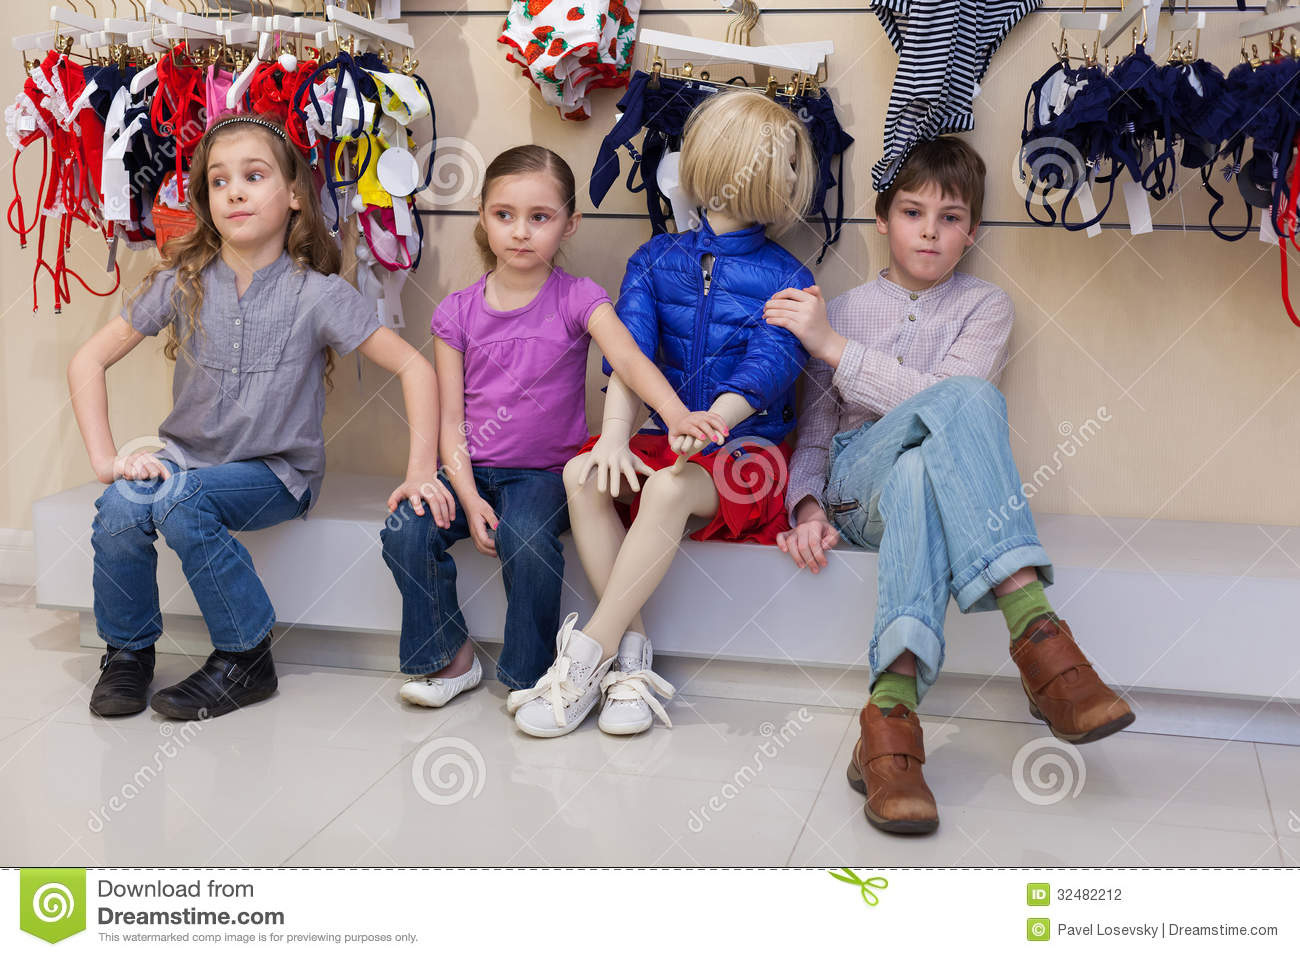 Children clothes stores Girls clothing stores